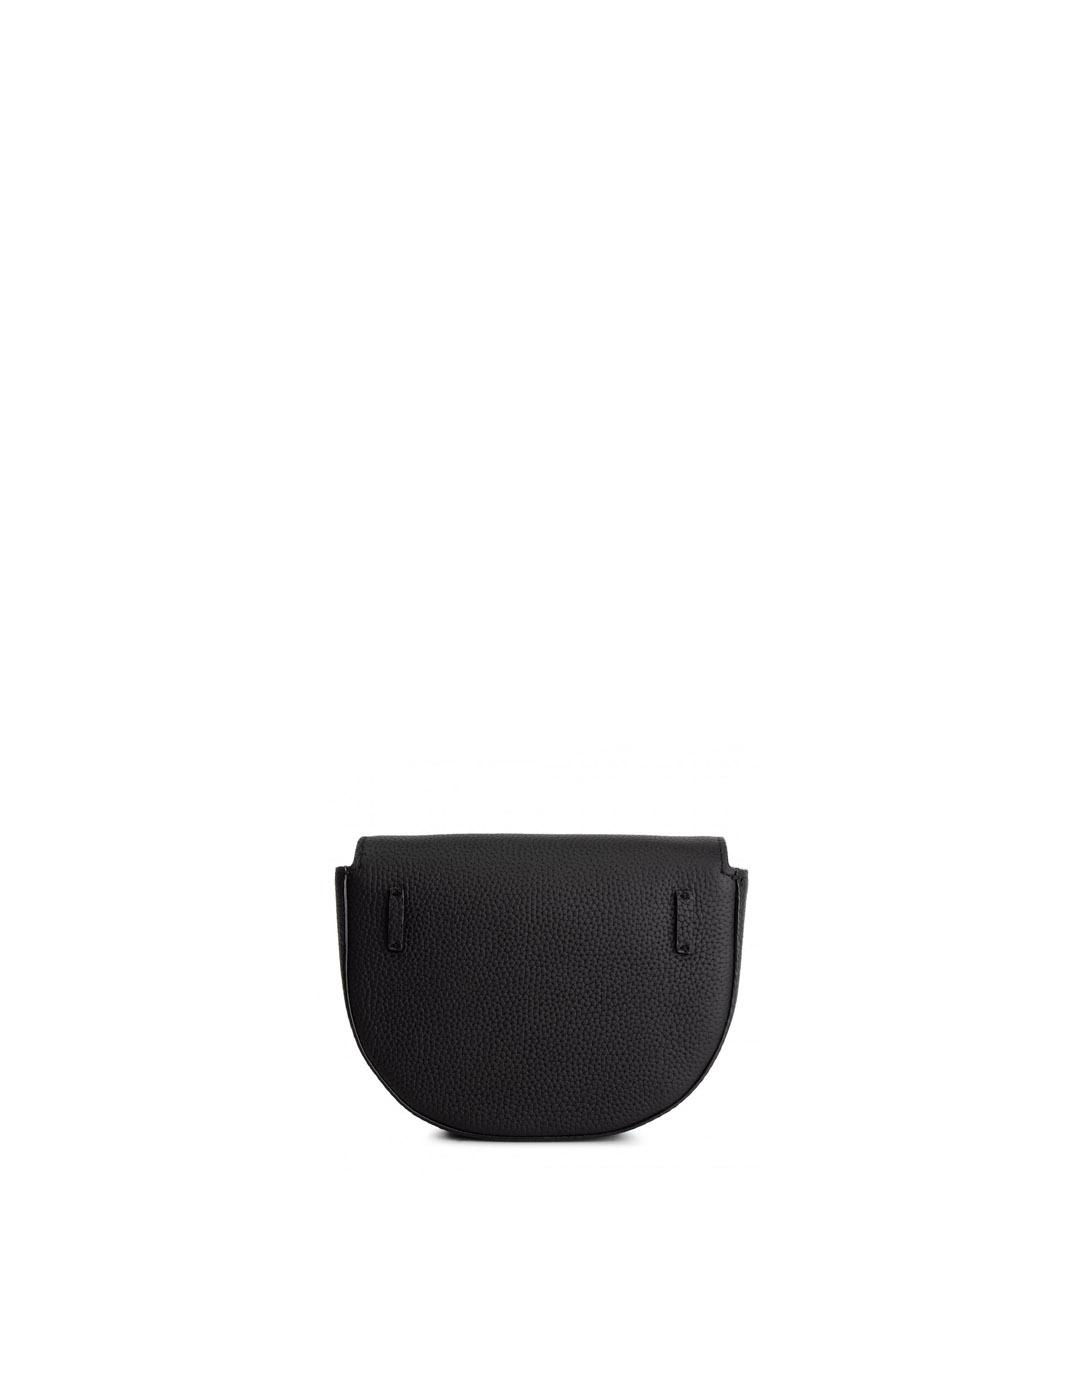 Bolso Karl Lagerfeld negro Karry All Bumbag